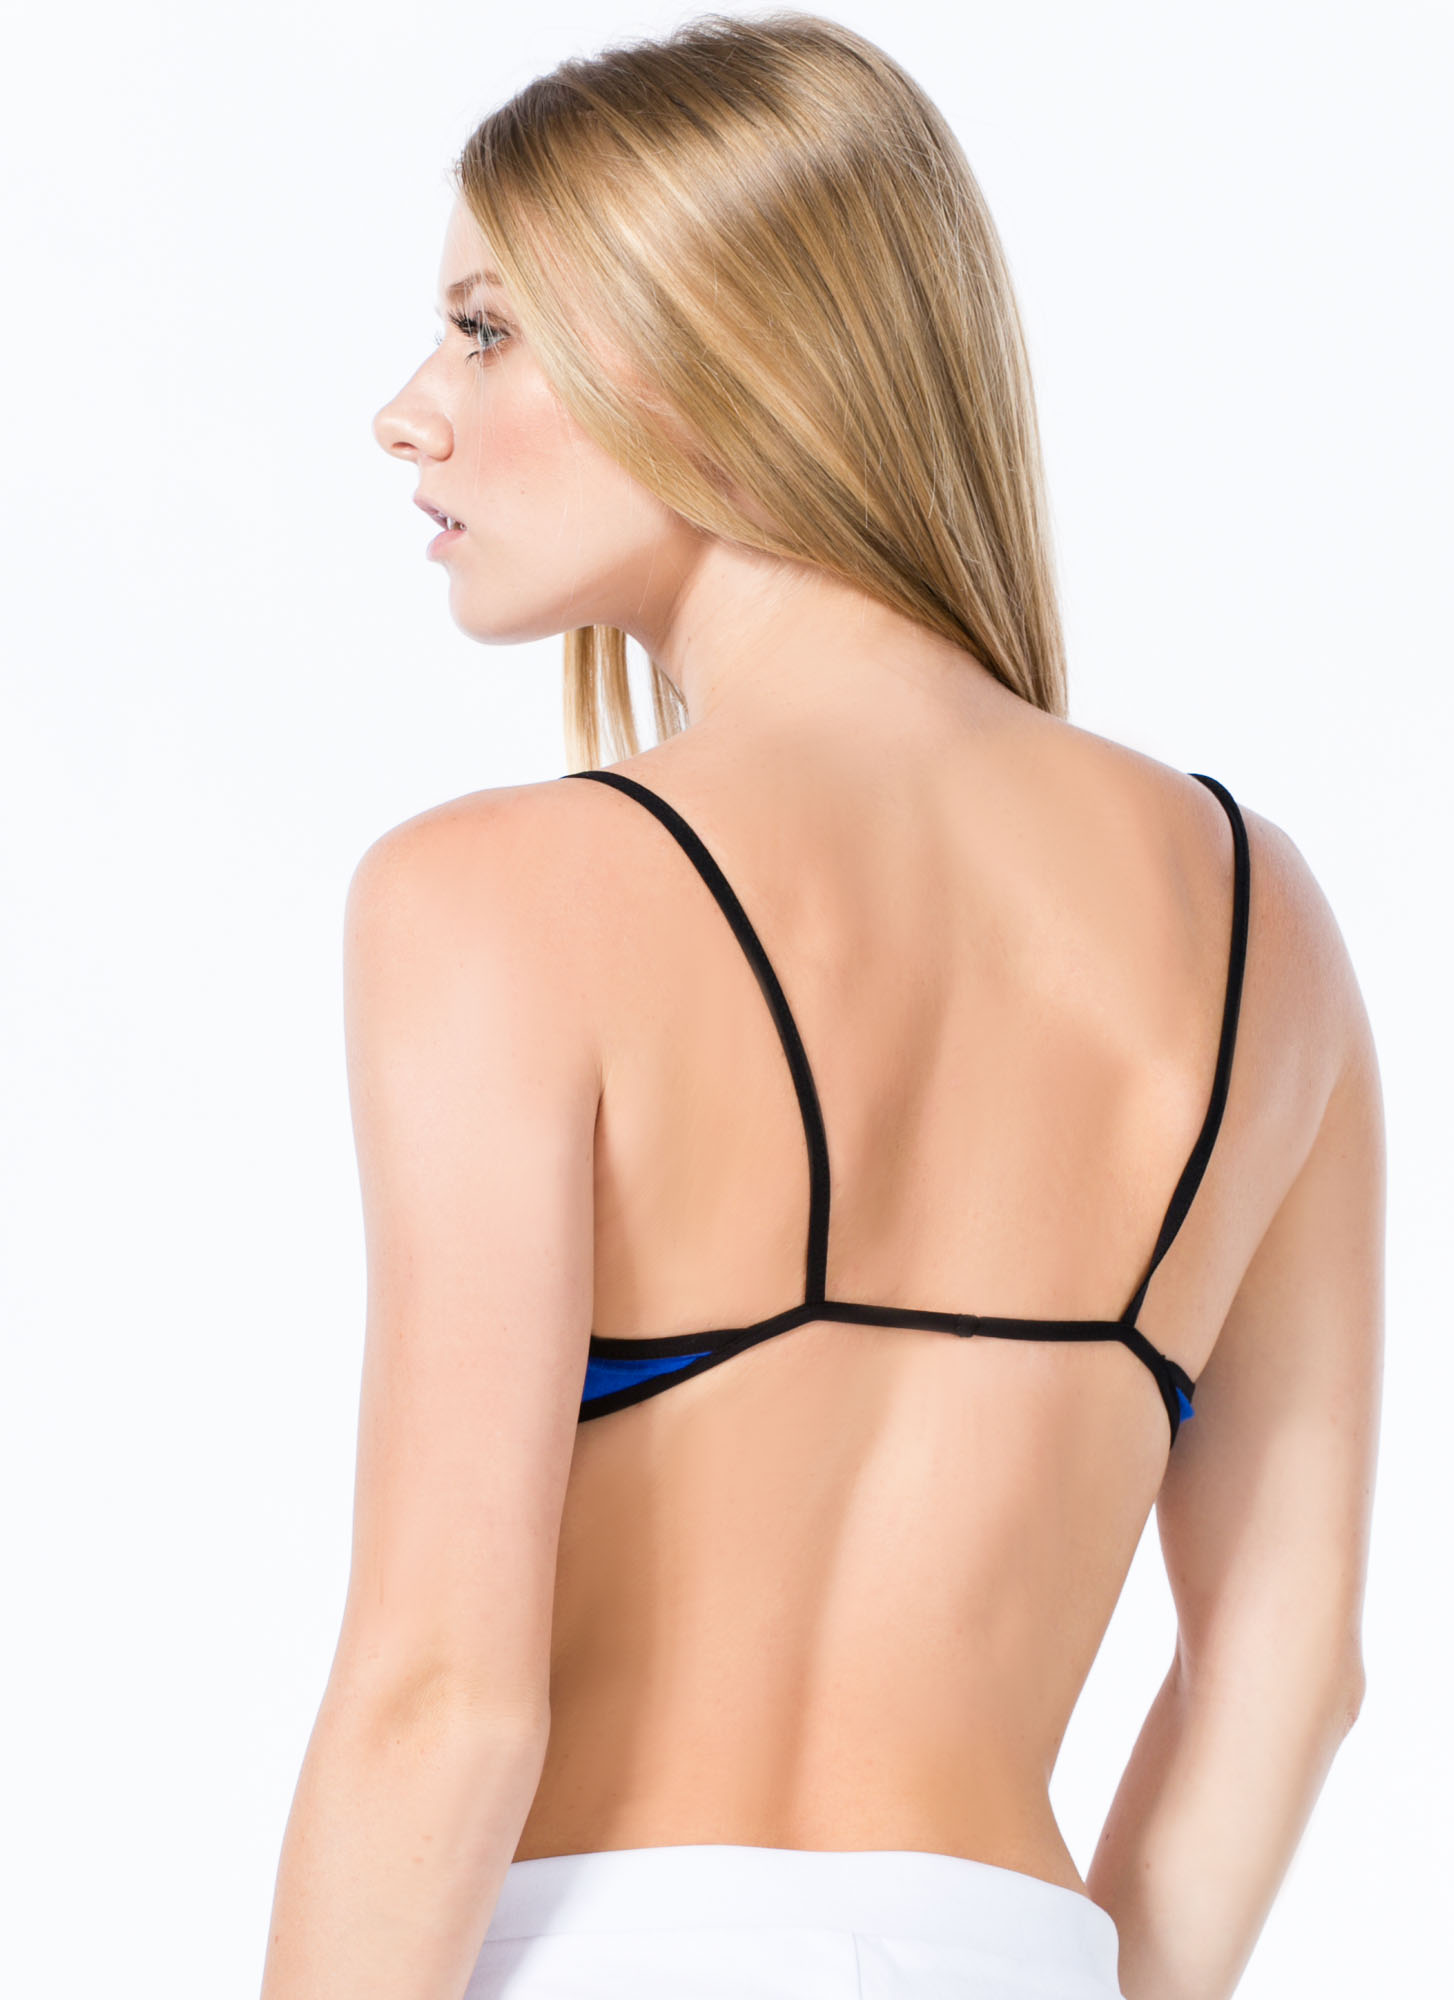 Strap Attack Bralette ROYALBLUE